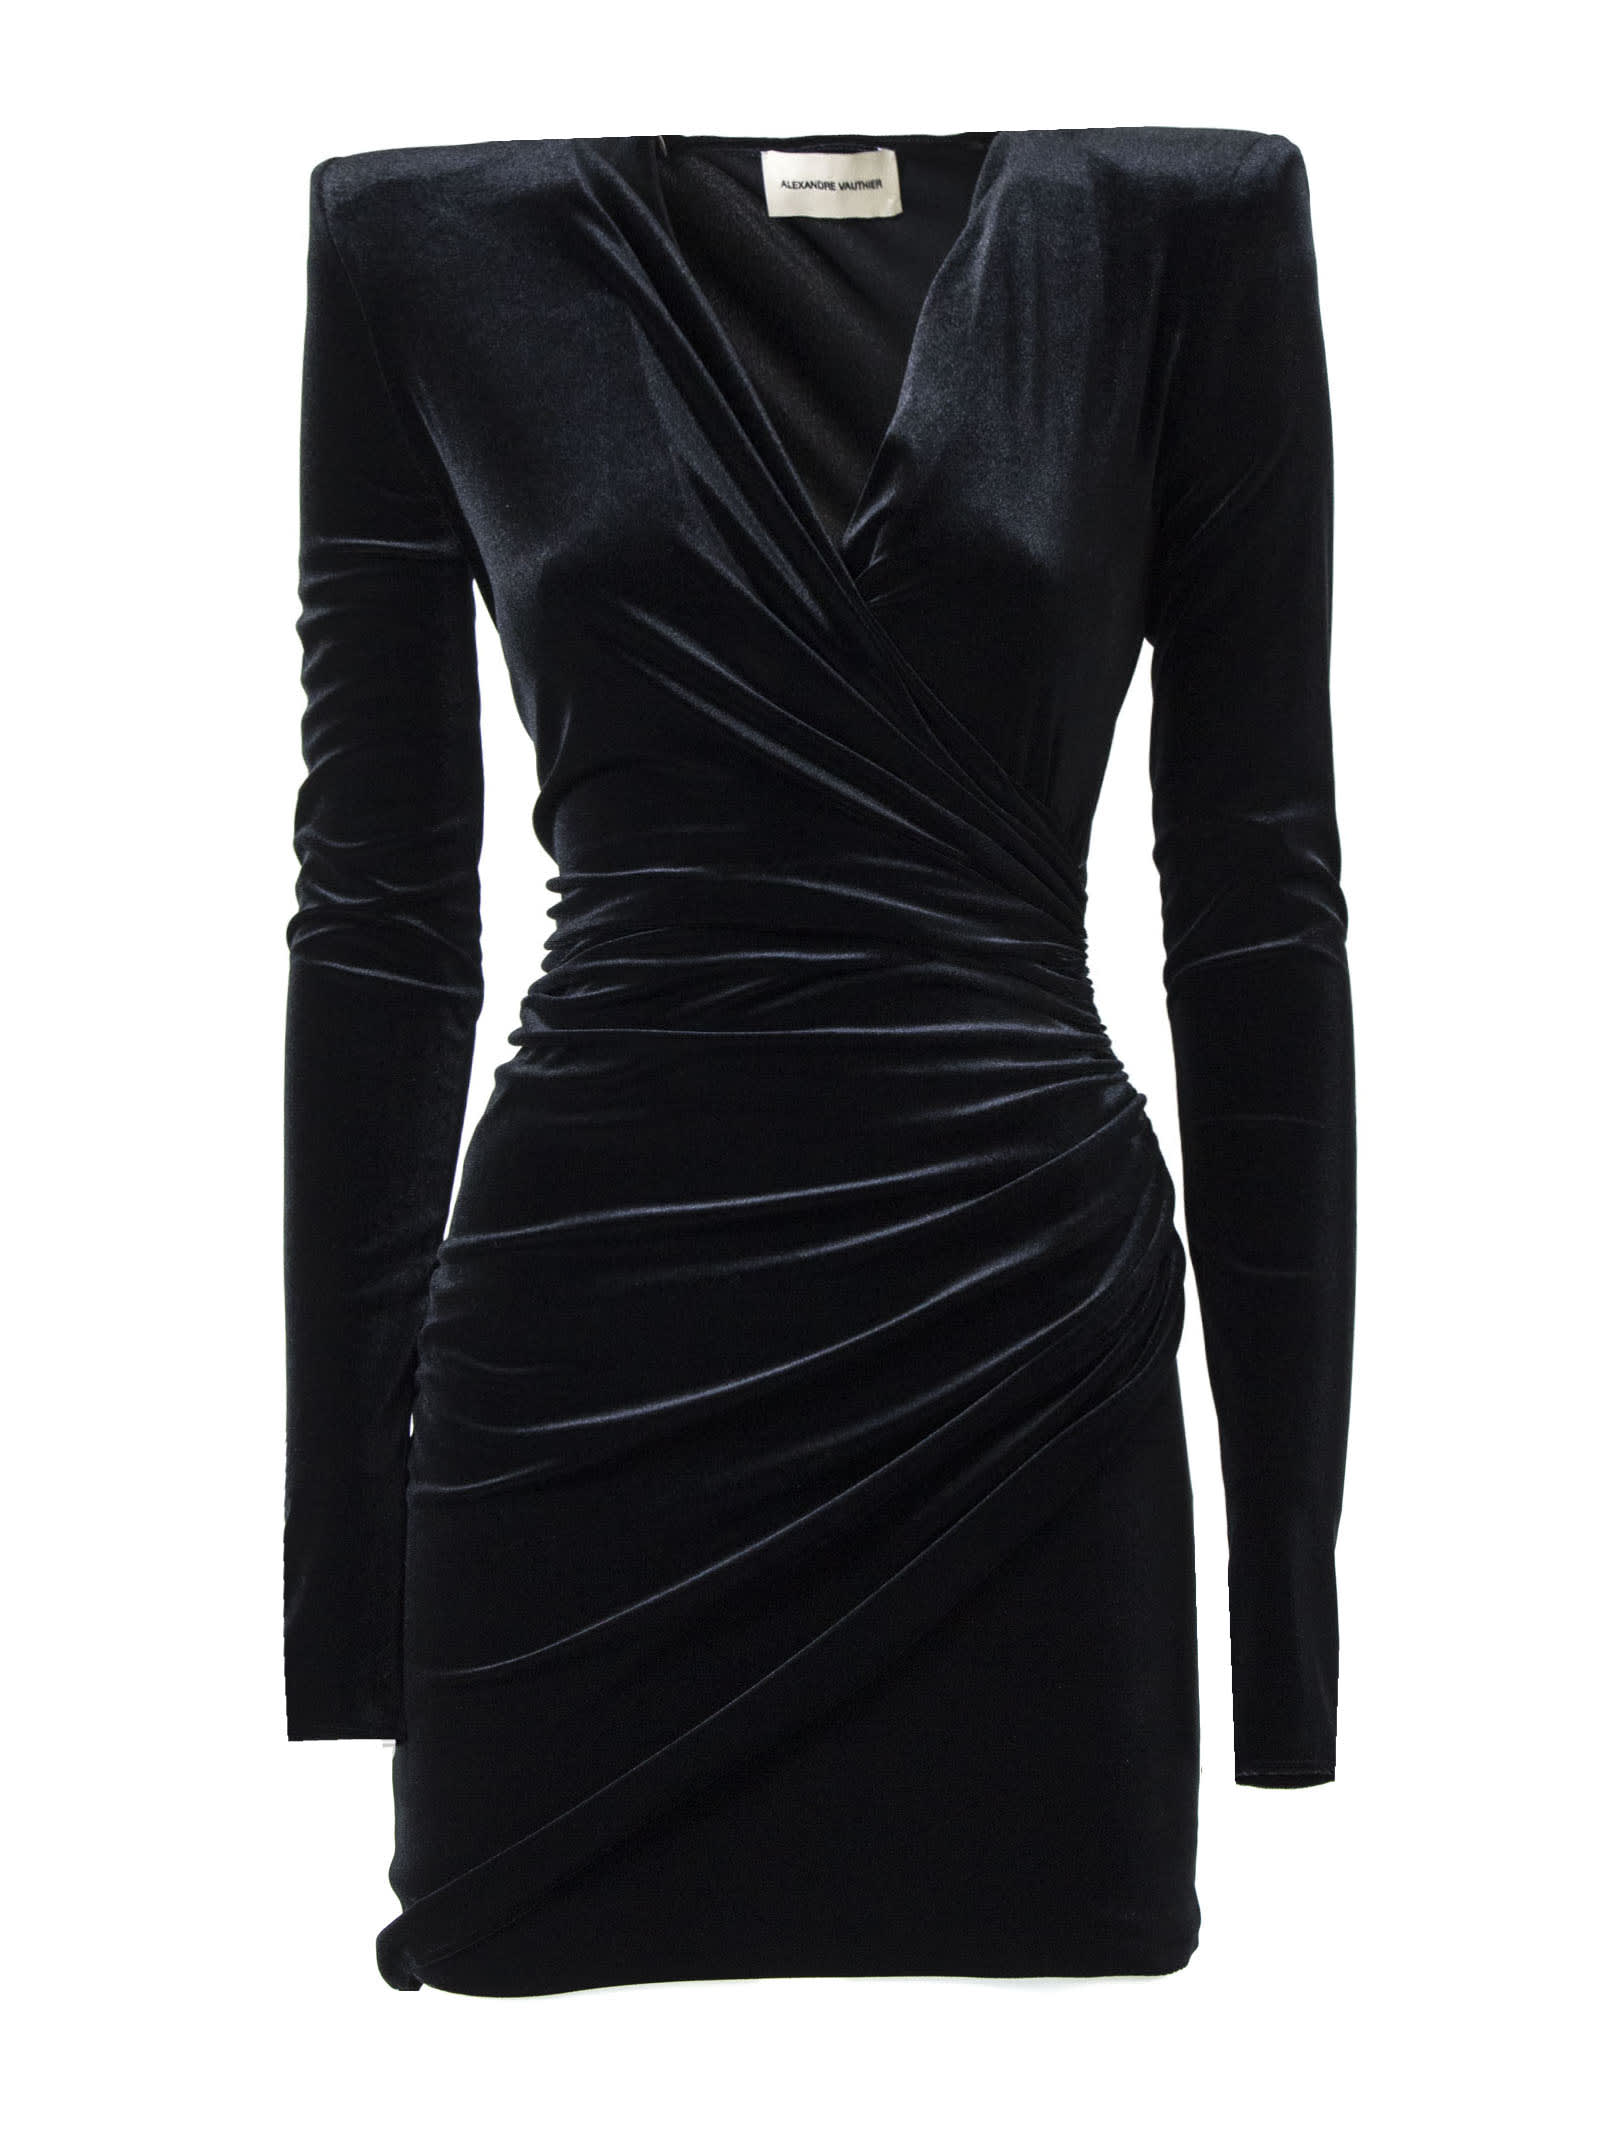 Alexandre Vauthier Black Velvet Dress